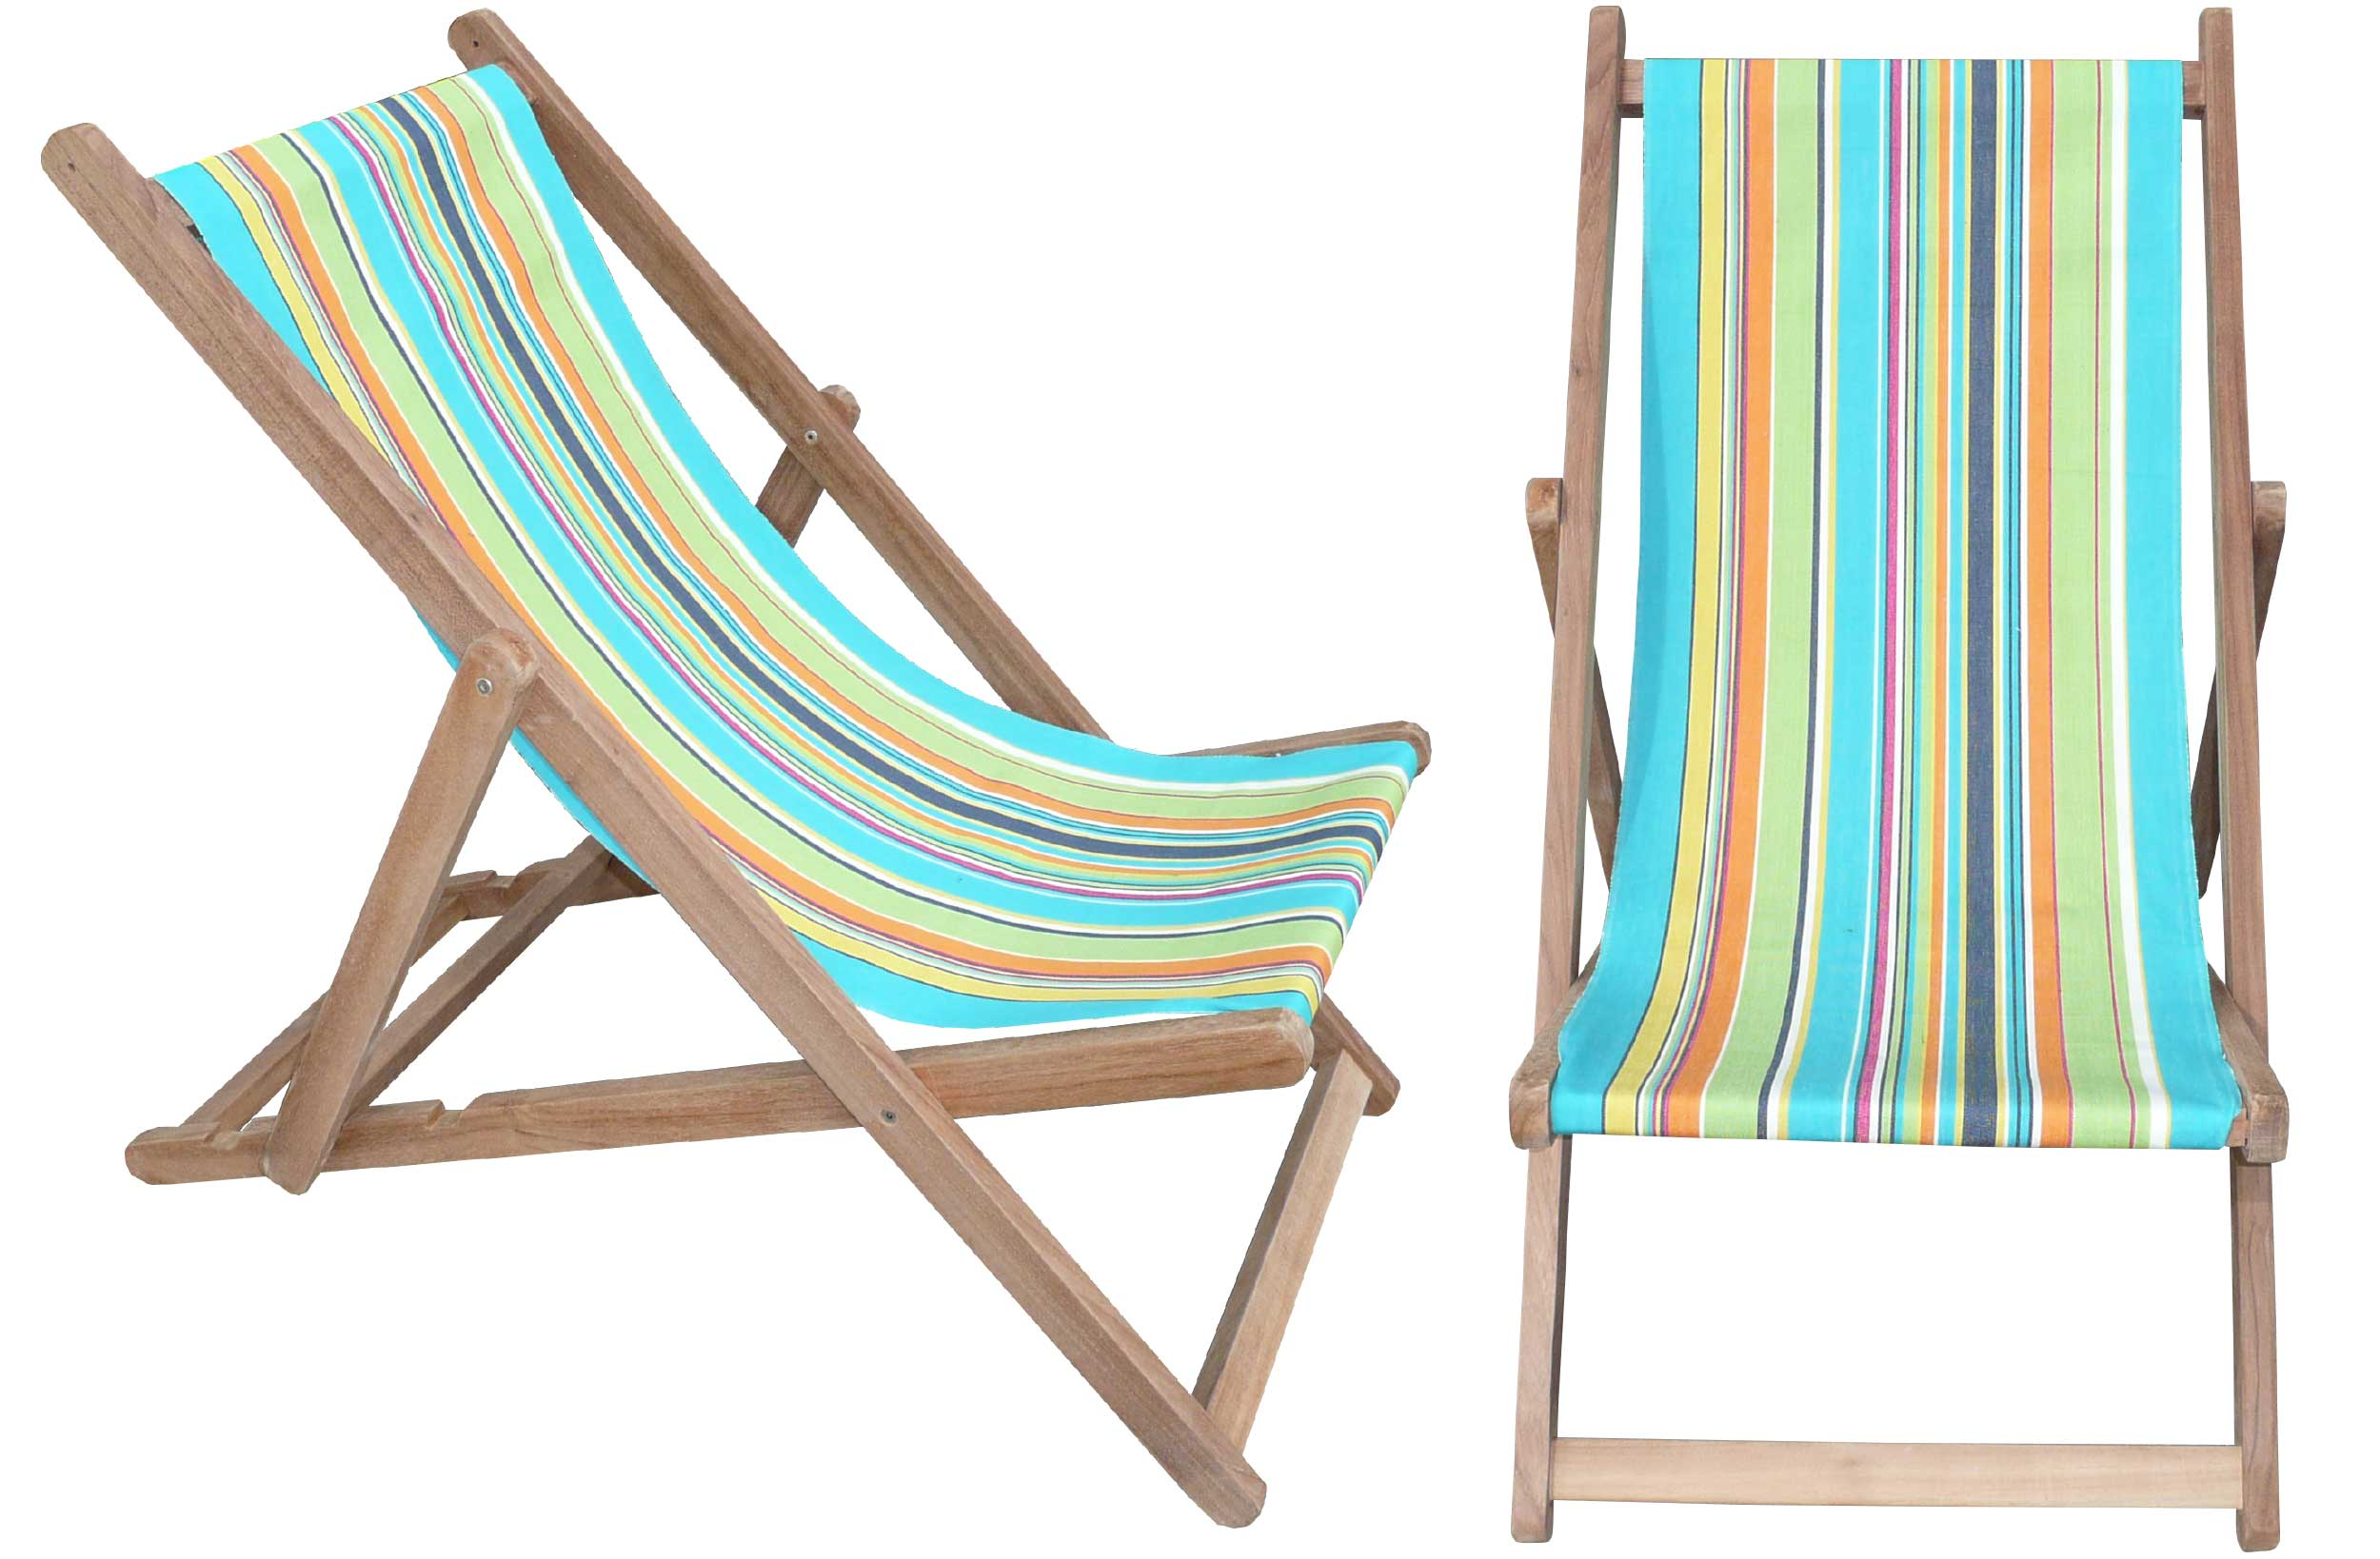 Turquoise Deckchairs | Wooden Folding Deck Chairs Athletics Stripe